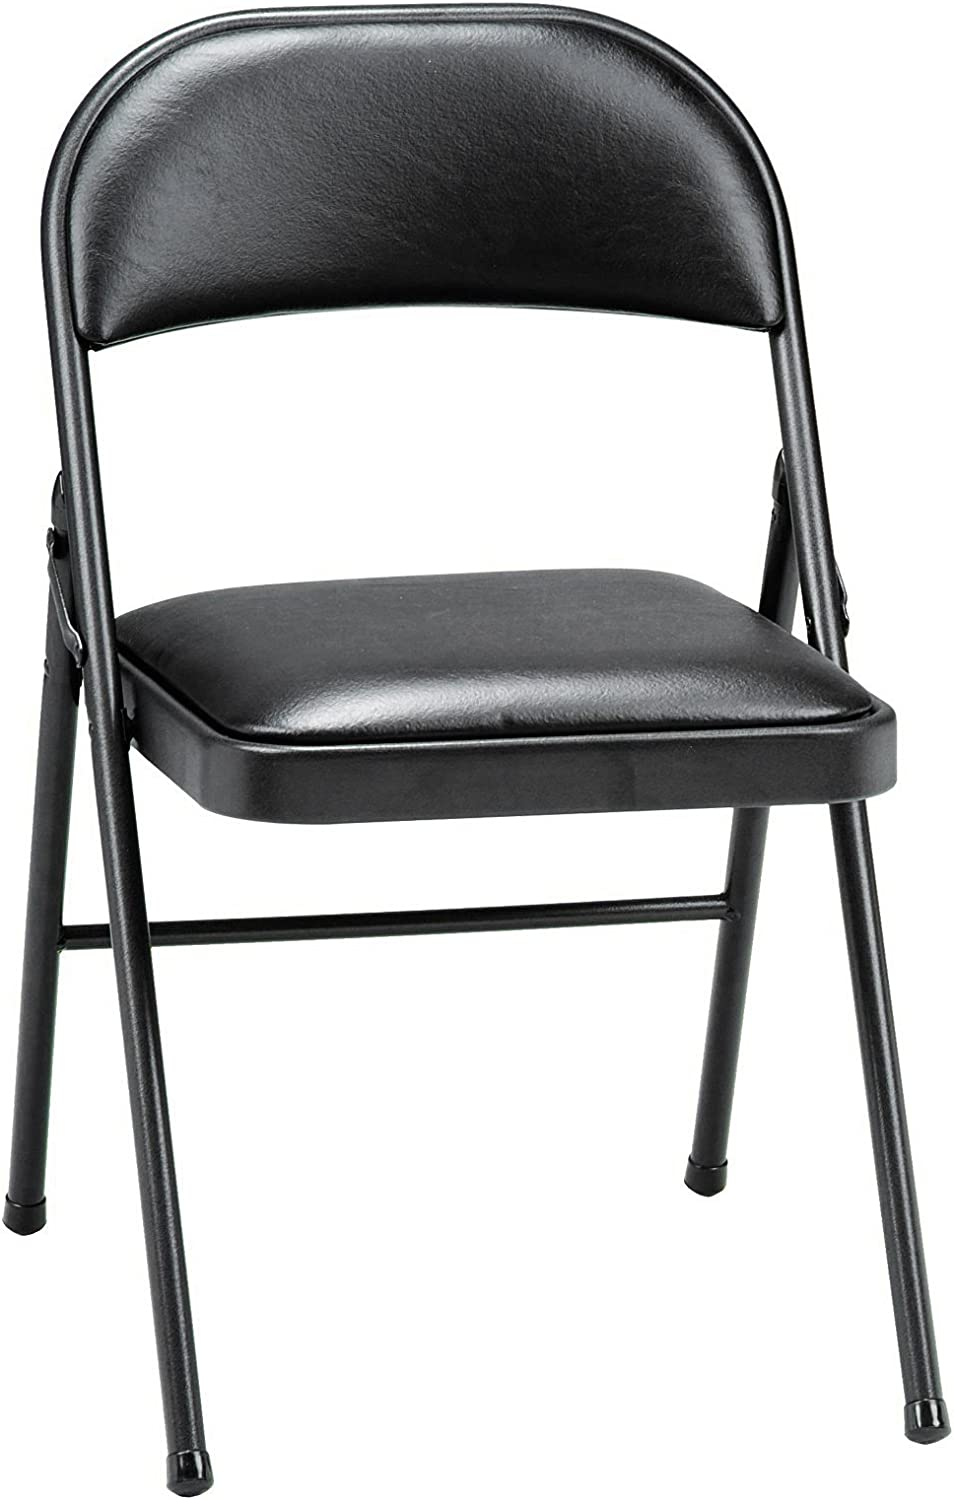 Meco 10-Pack Deluxe Vinyl Padded Folding Chair, Black Lace and Black Vinyl  Seat and Back